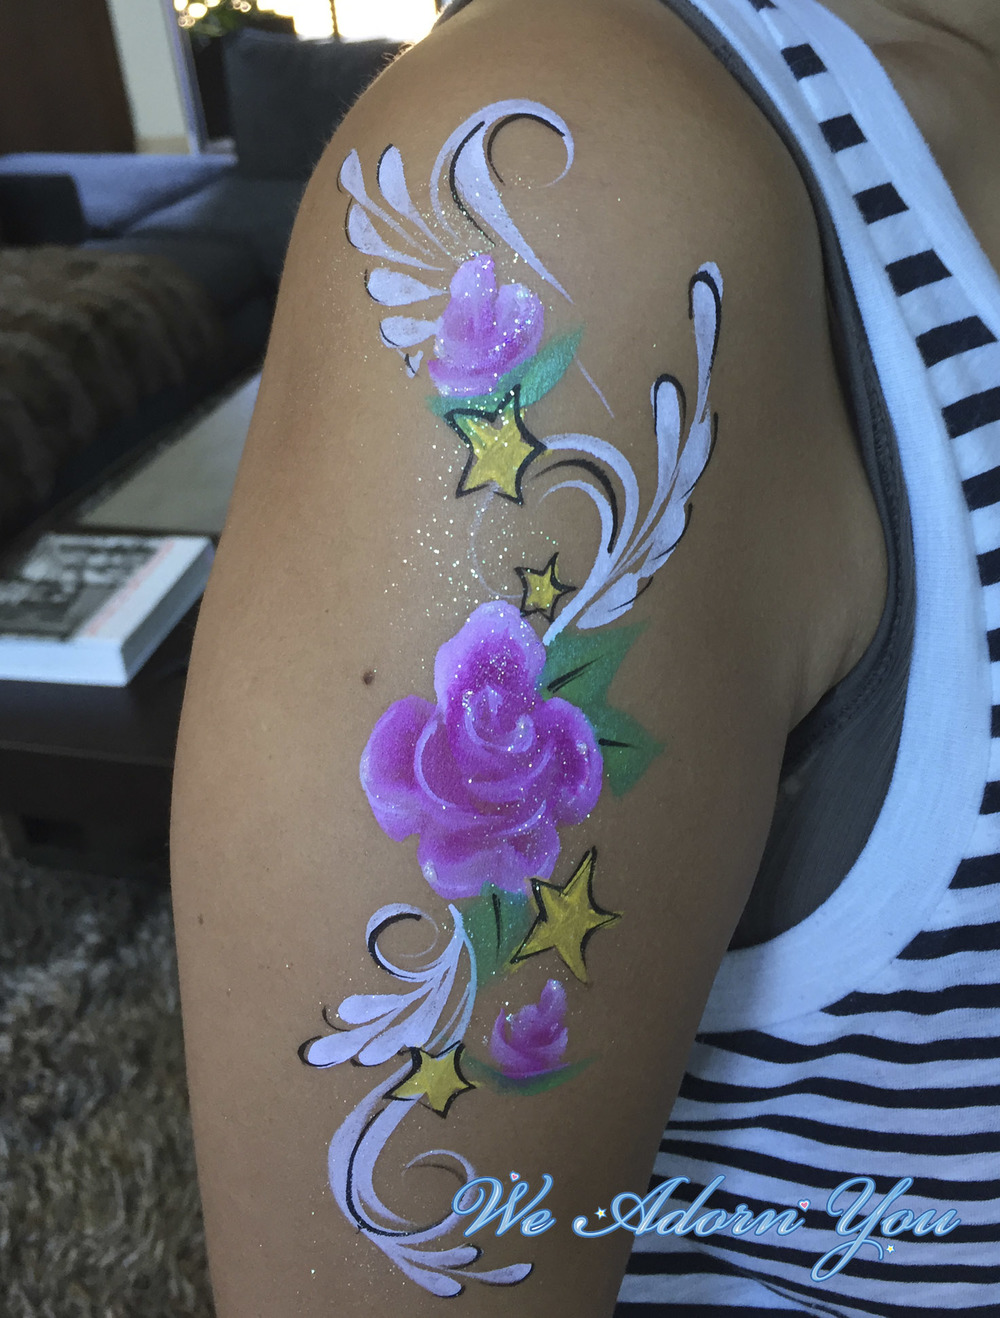 Face Painting Floral Arm- We Adorn You.jpg